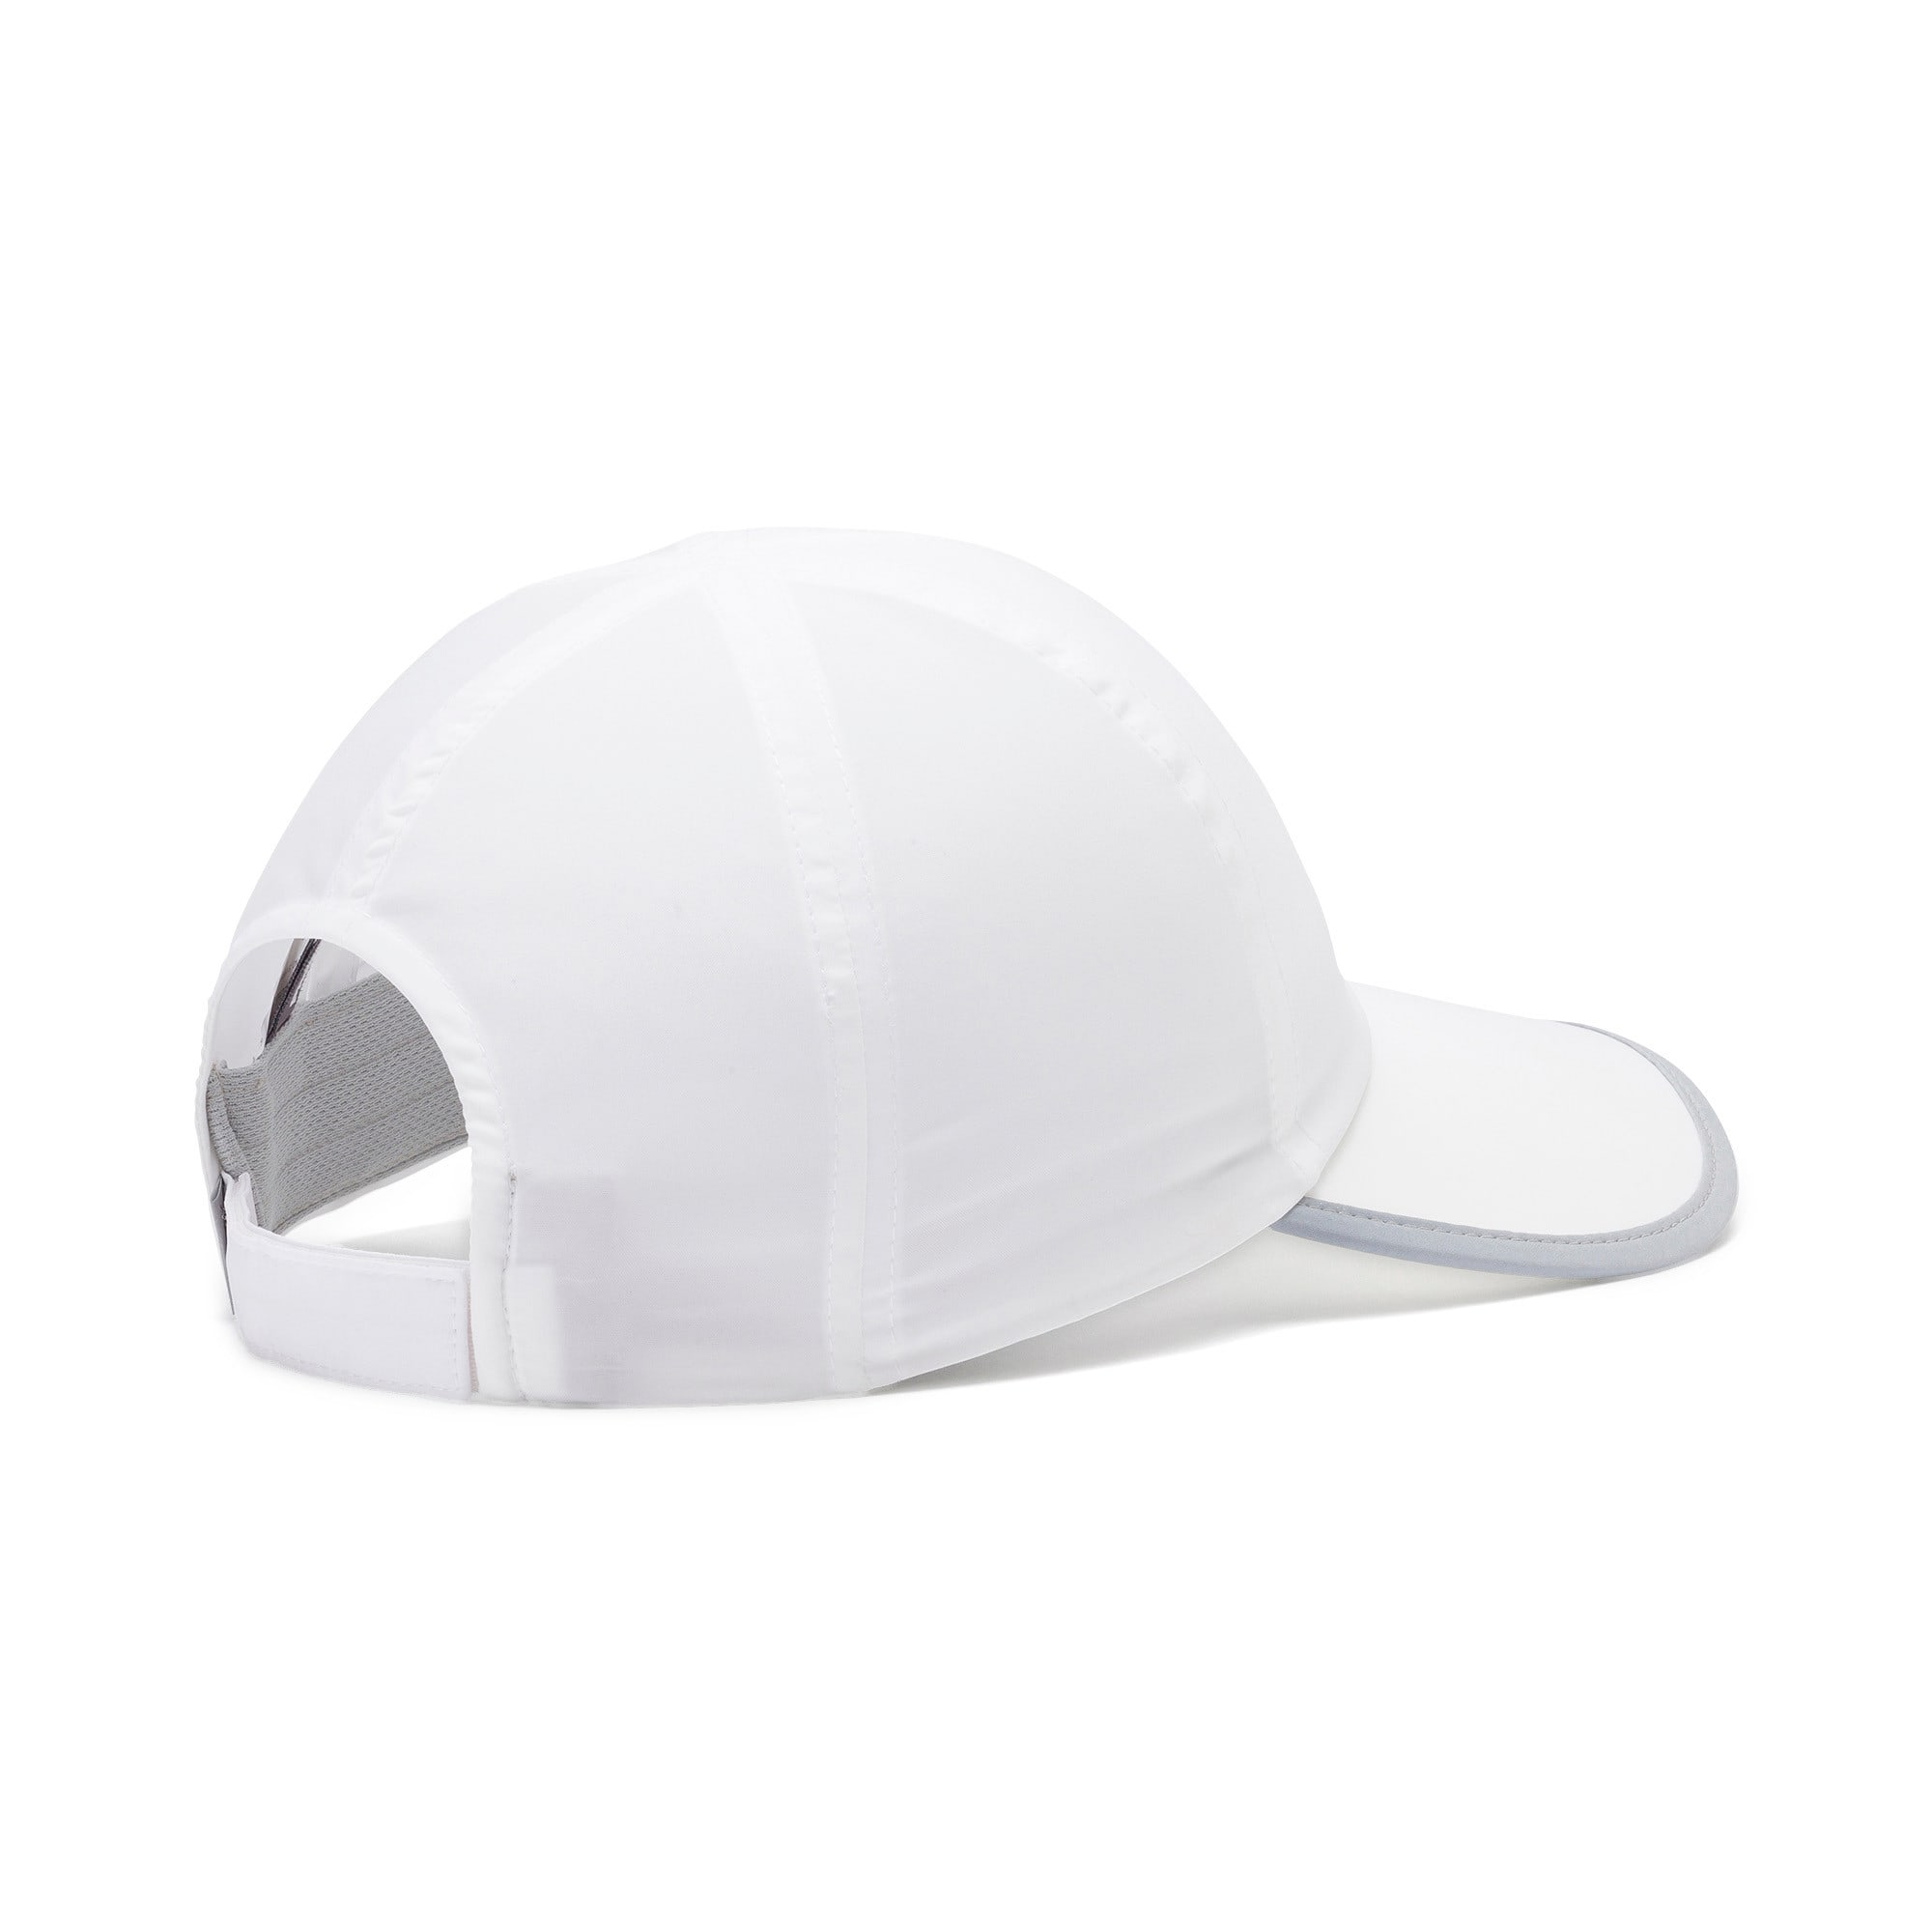 Thumbnail 3 of ESS Running Cap, Puma White-Cat, medium